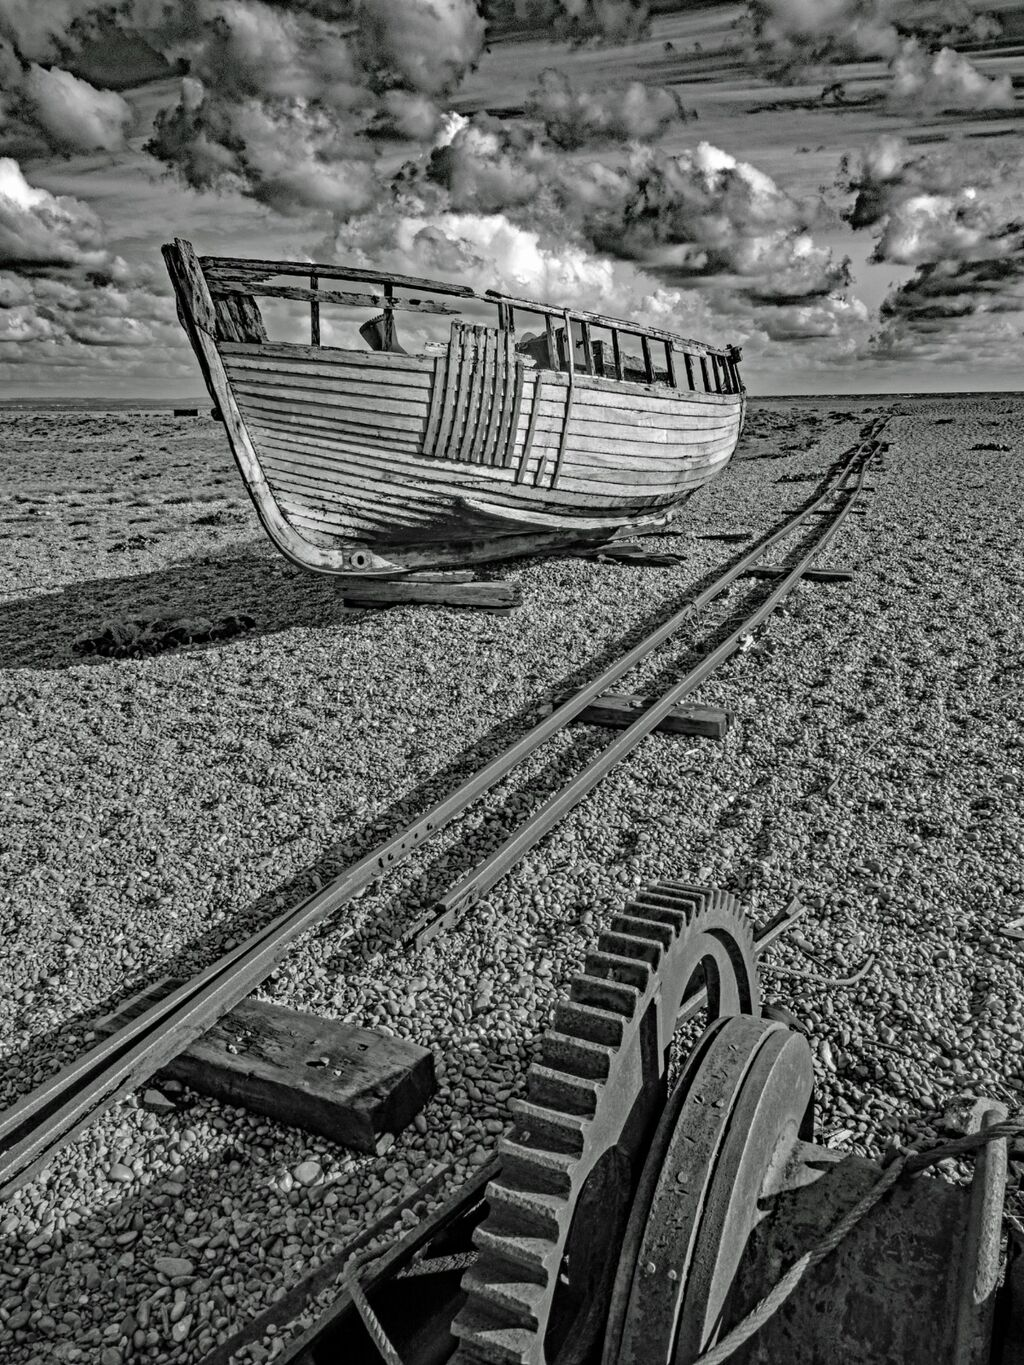 Derelict Boat and Winch at Dungeness